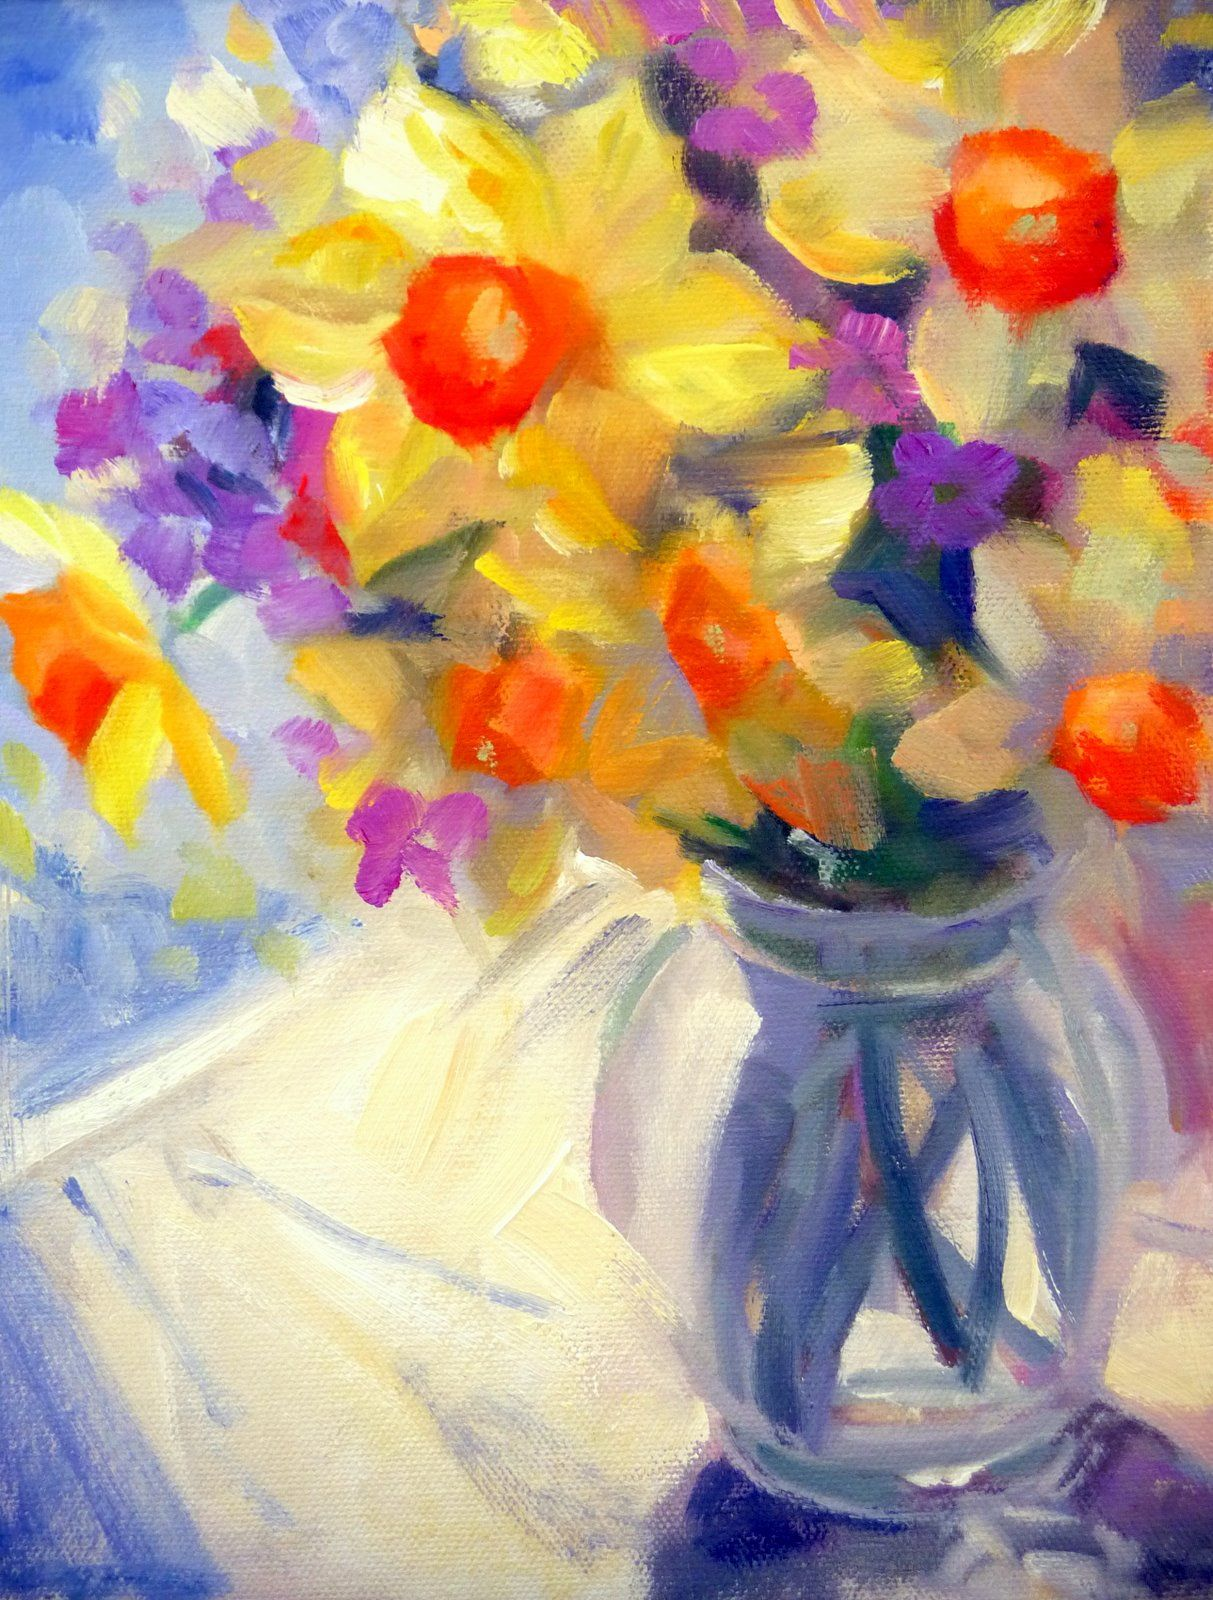 Pin by mary alig on Flowers in Art! | Pinterest | Nice, Modern art ...